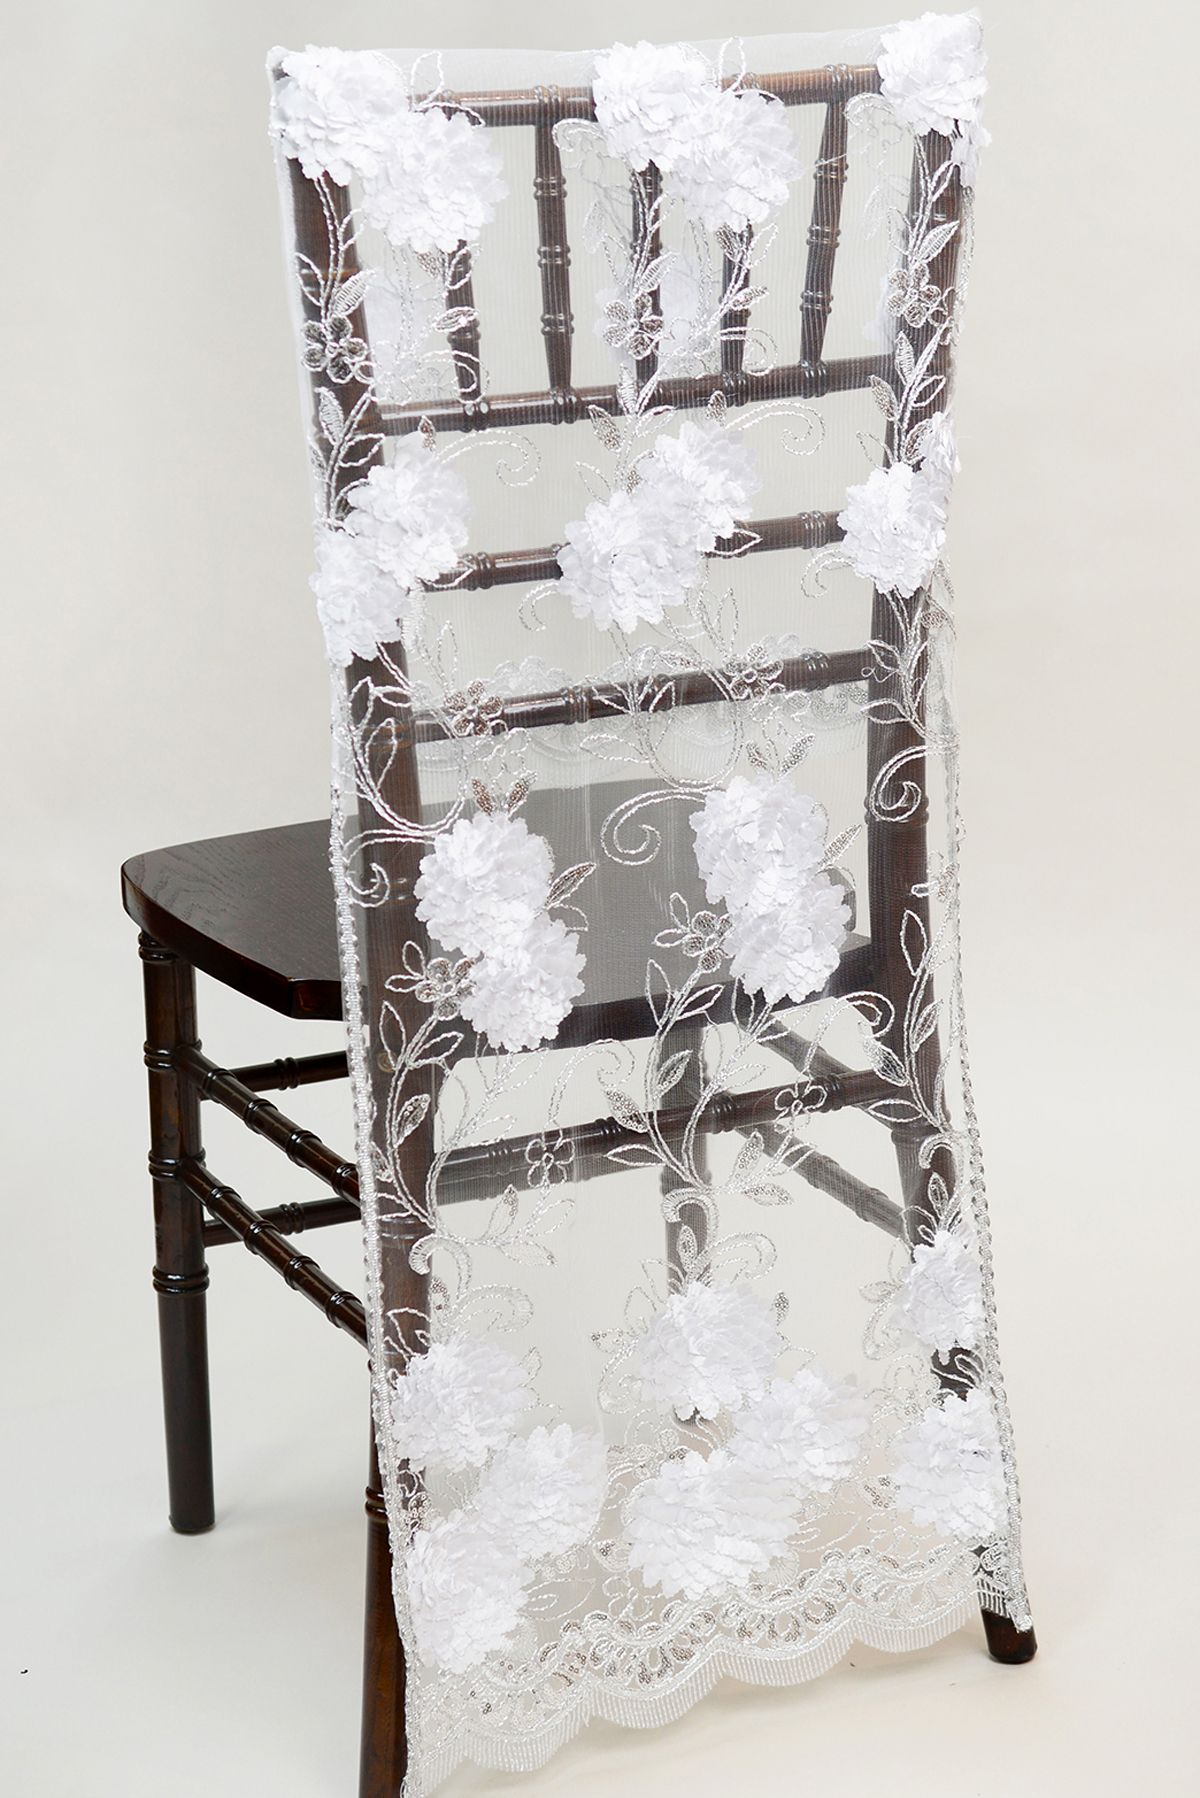 Decor for chairs wedding Chair Sashes Banners Signs  Chiavari chairs Chair covers and